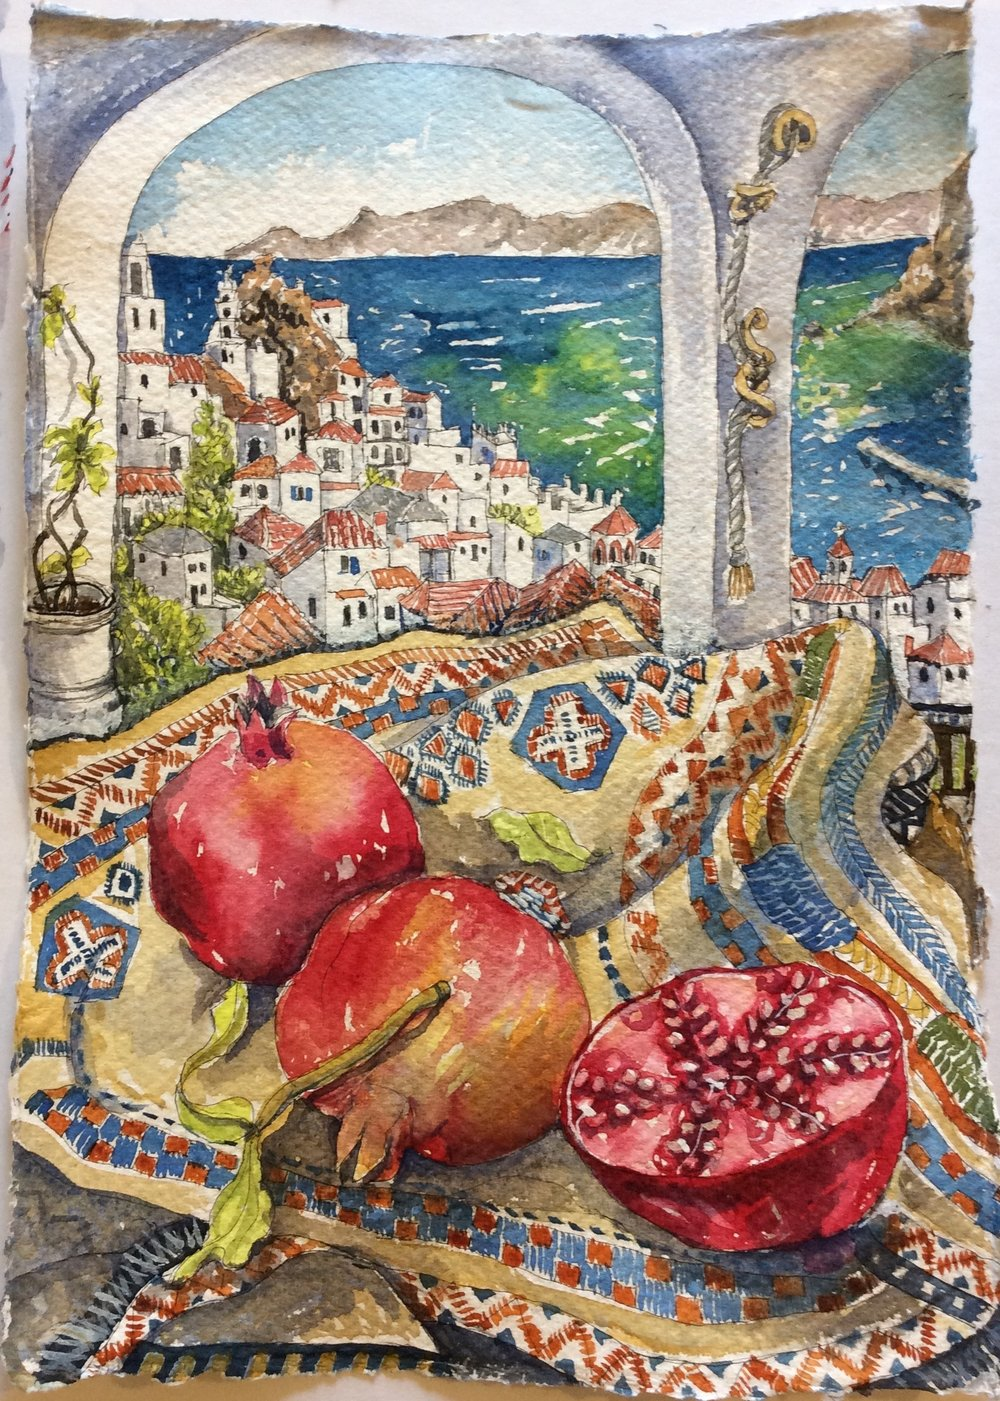 Pomegranates in Skopelos